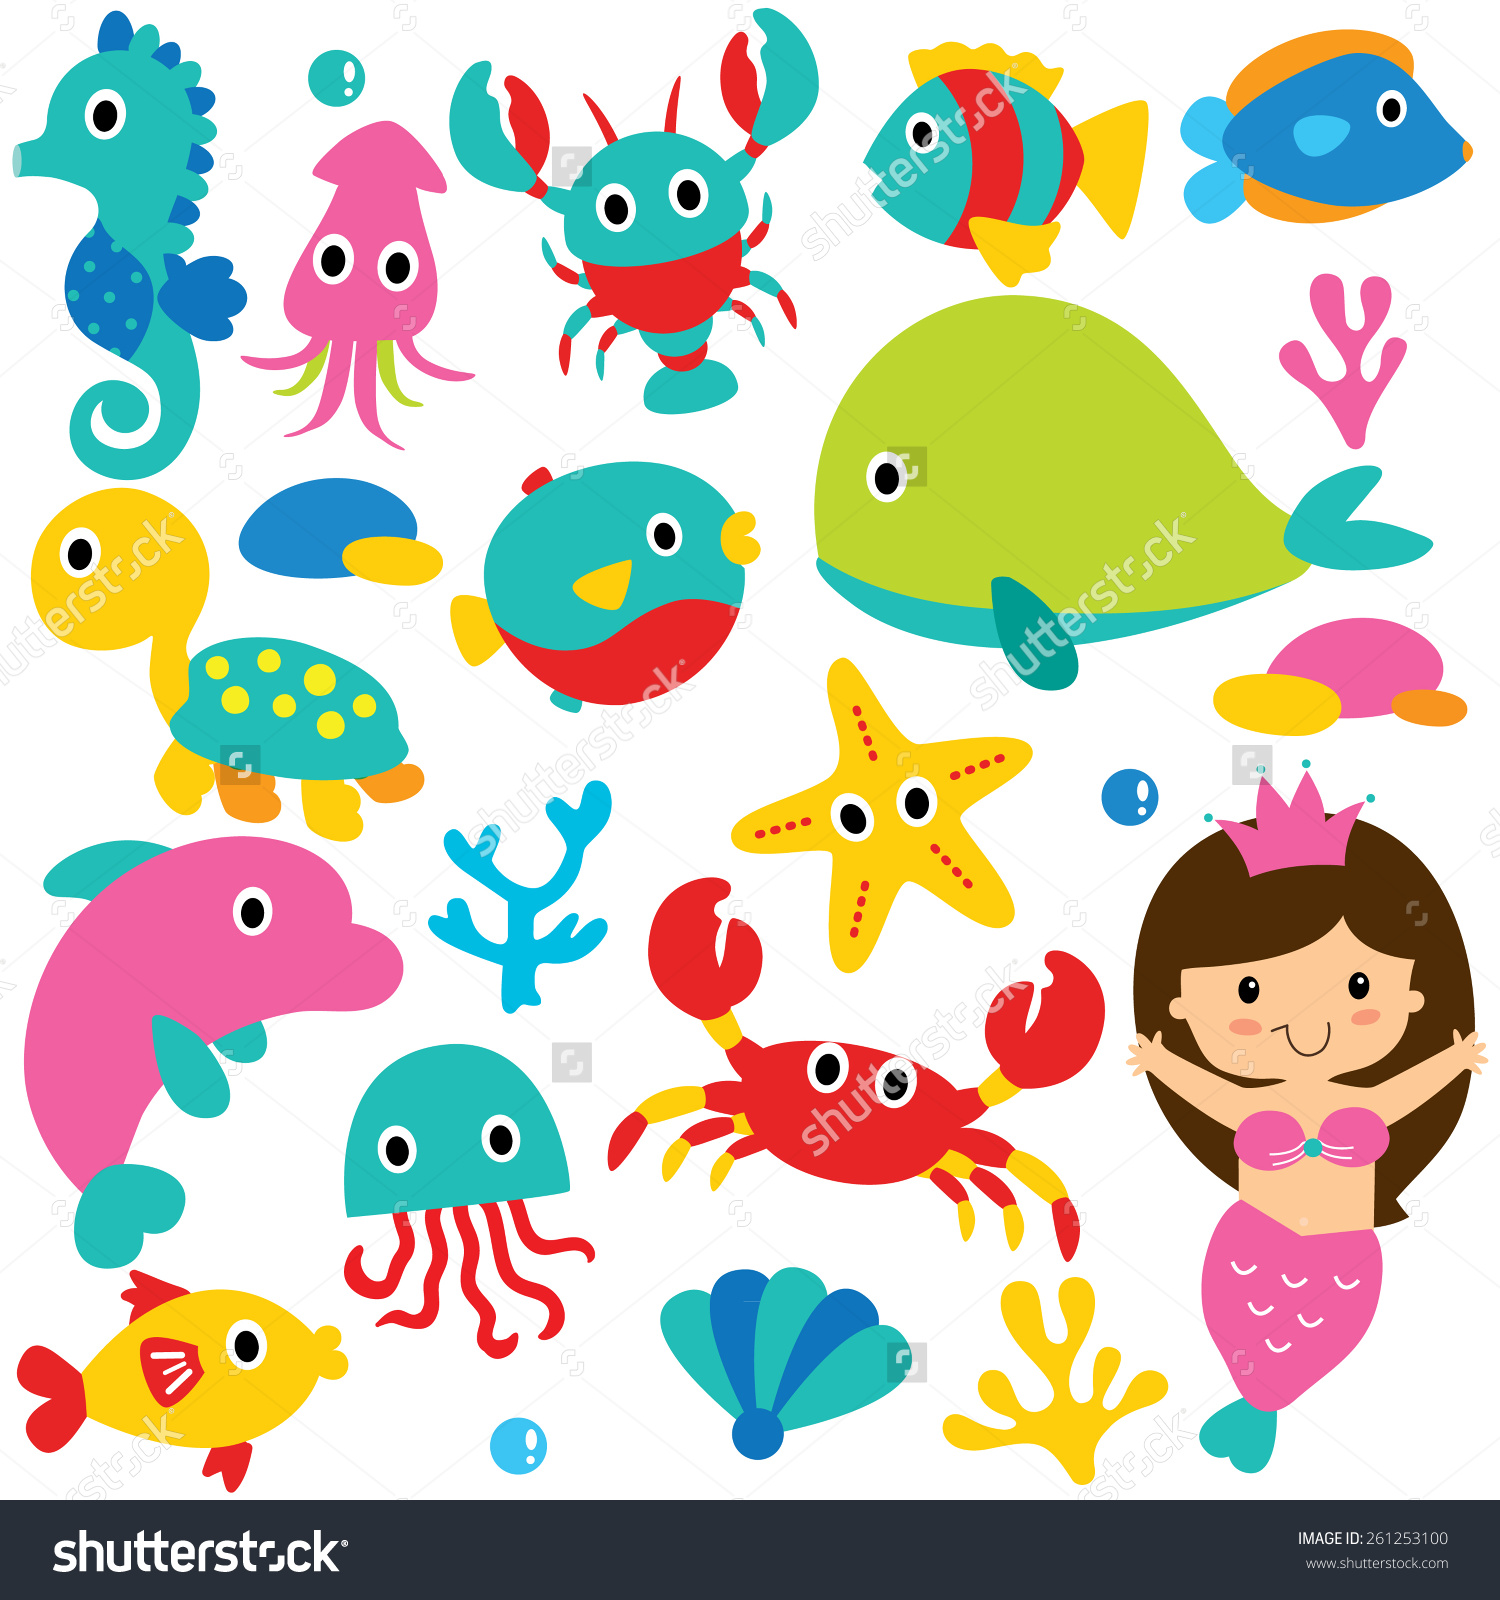 Clipart Sea Animals. Save To A Lightbox-Clipart Sea Animals. Save to a lightbox-8